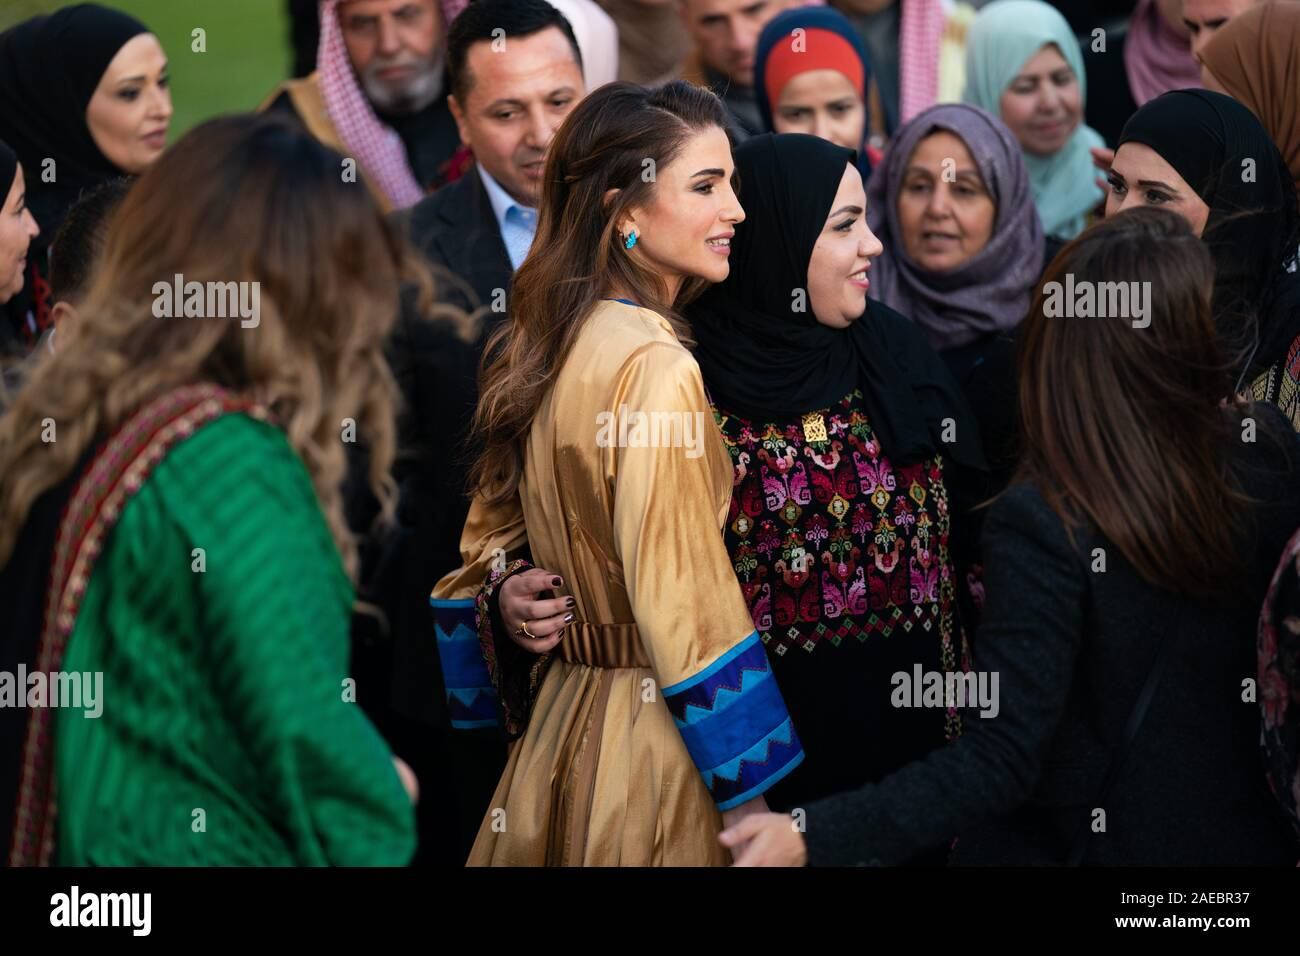 Queen Rania With Members Of The Al Da Aja Tribe In Amman On December 01 2019 Photo Royal Hashemite Court Albert Nieboer Netherlands Out Point De Vue Out Stock Photo Alamy